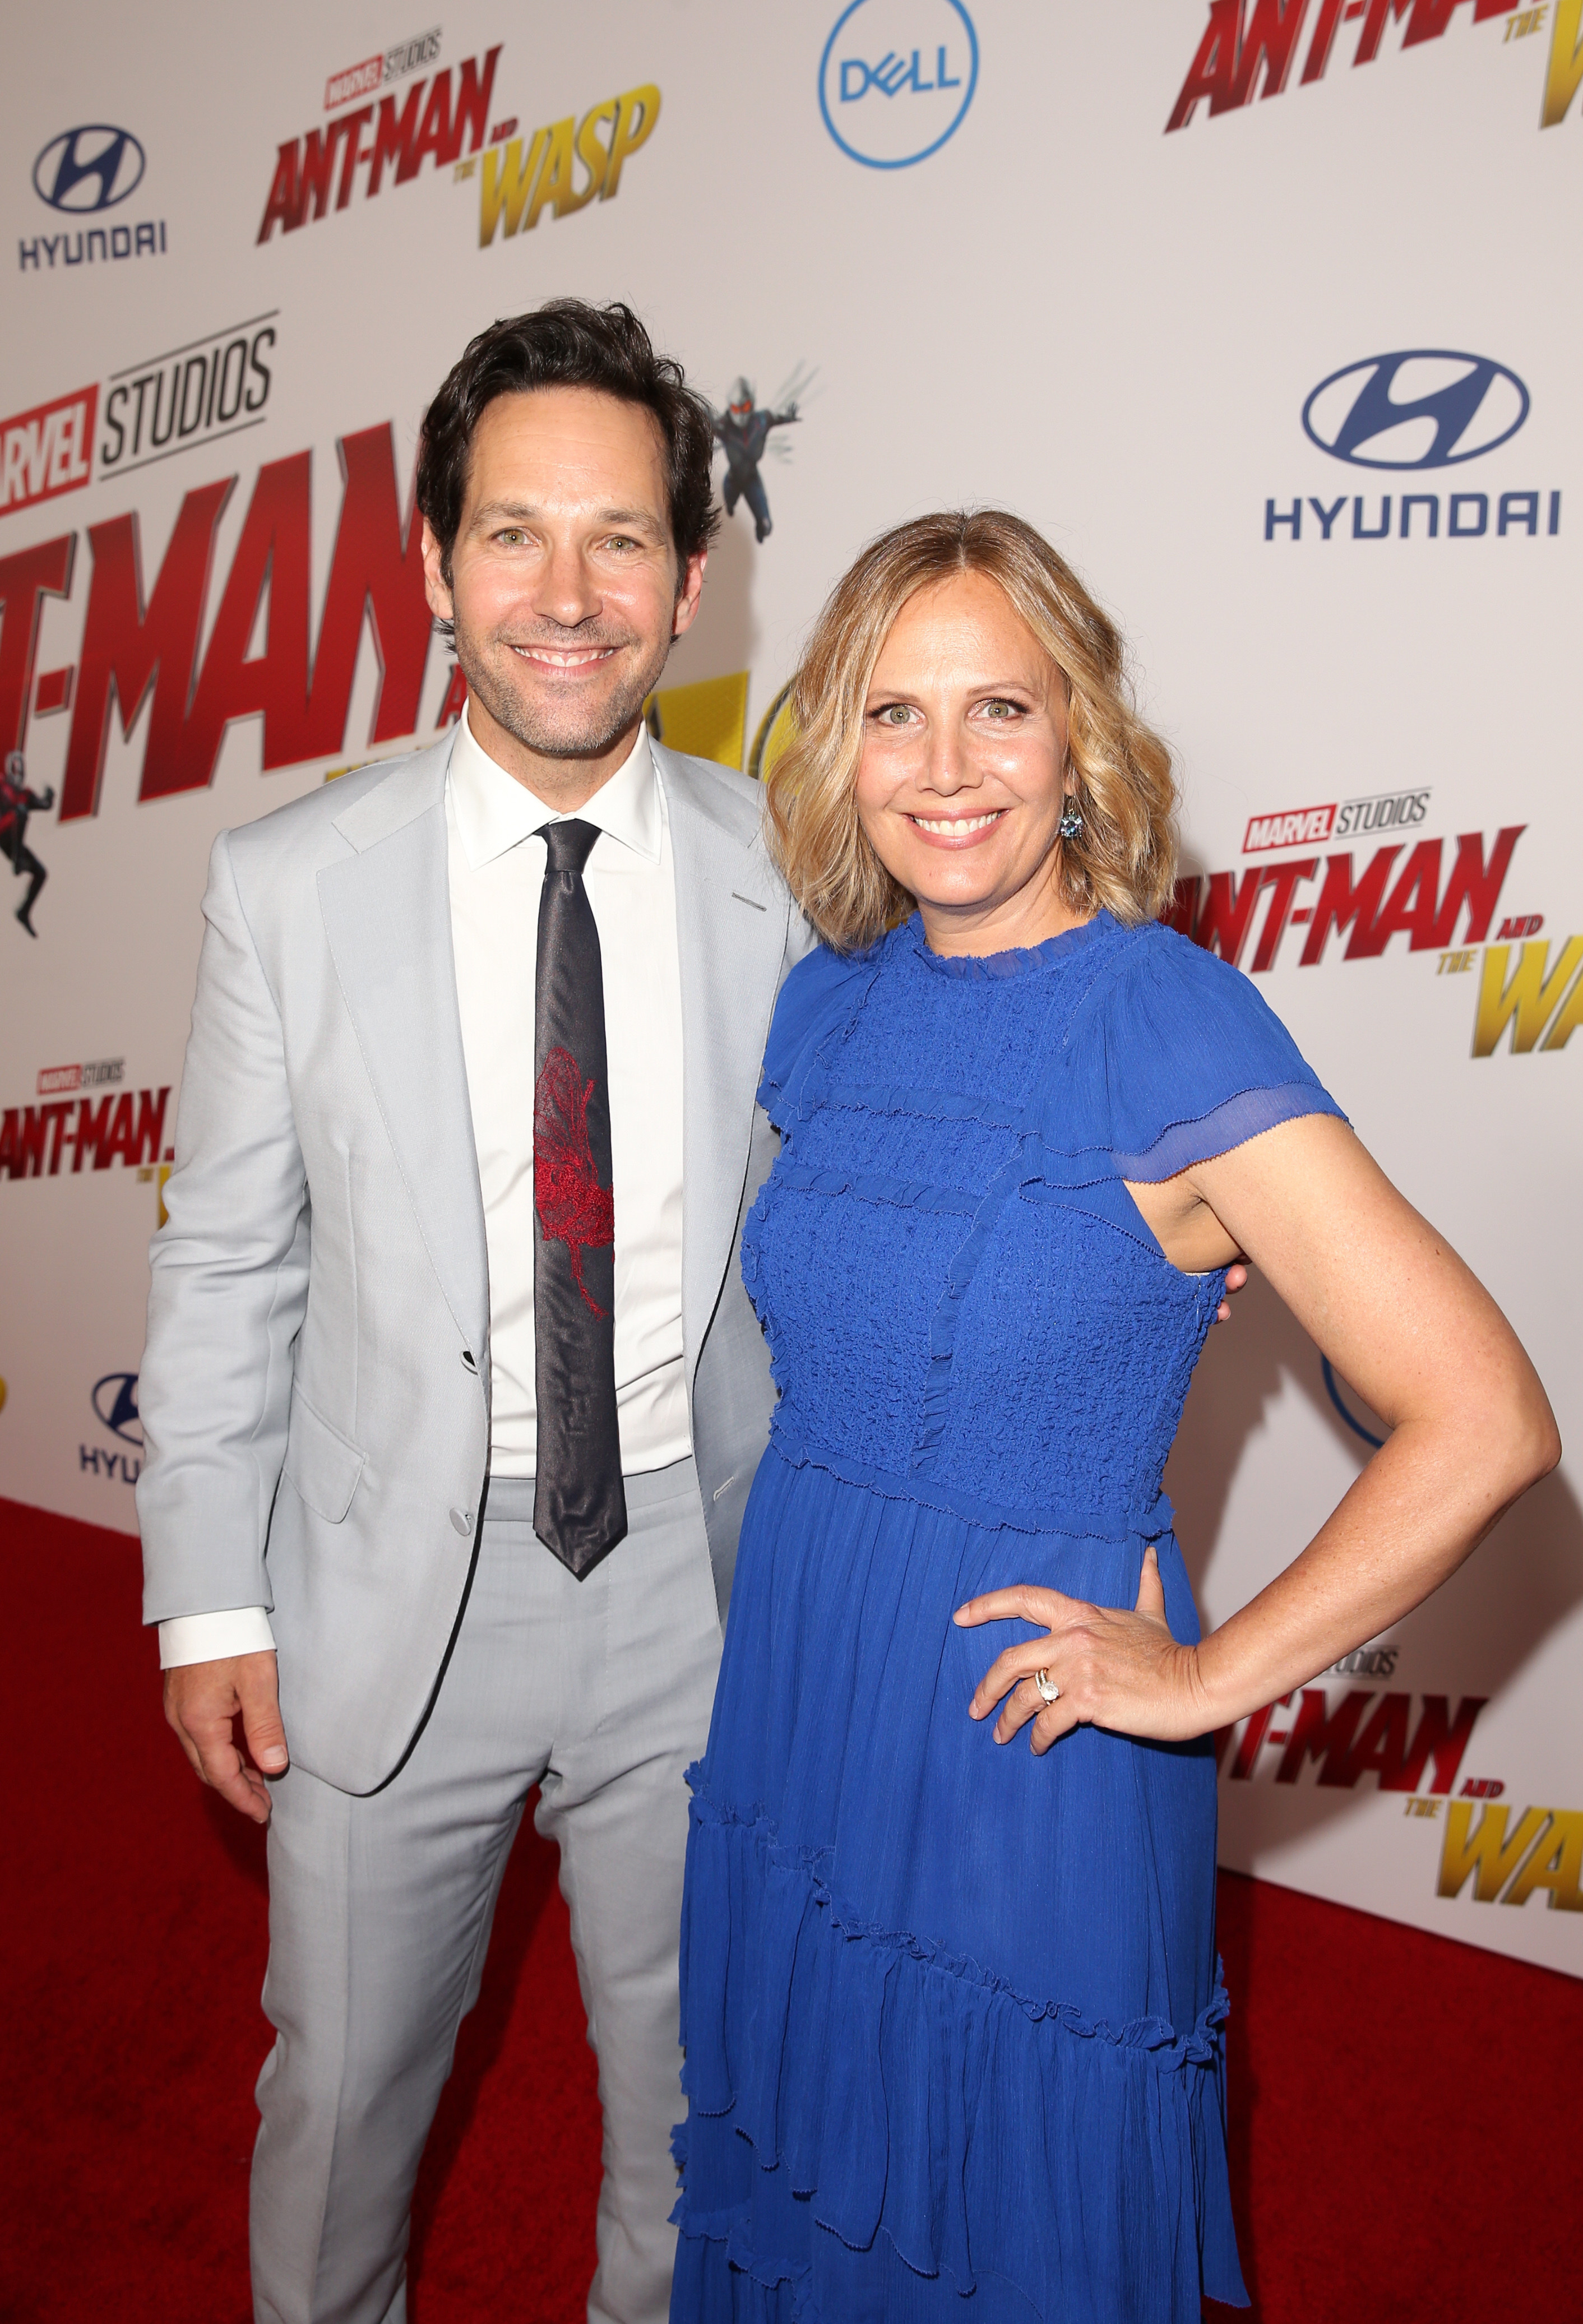 at the antman premiere